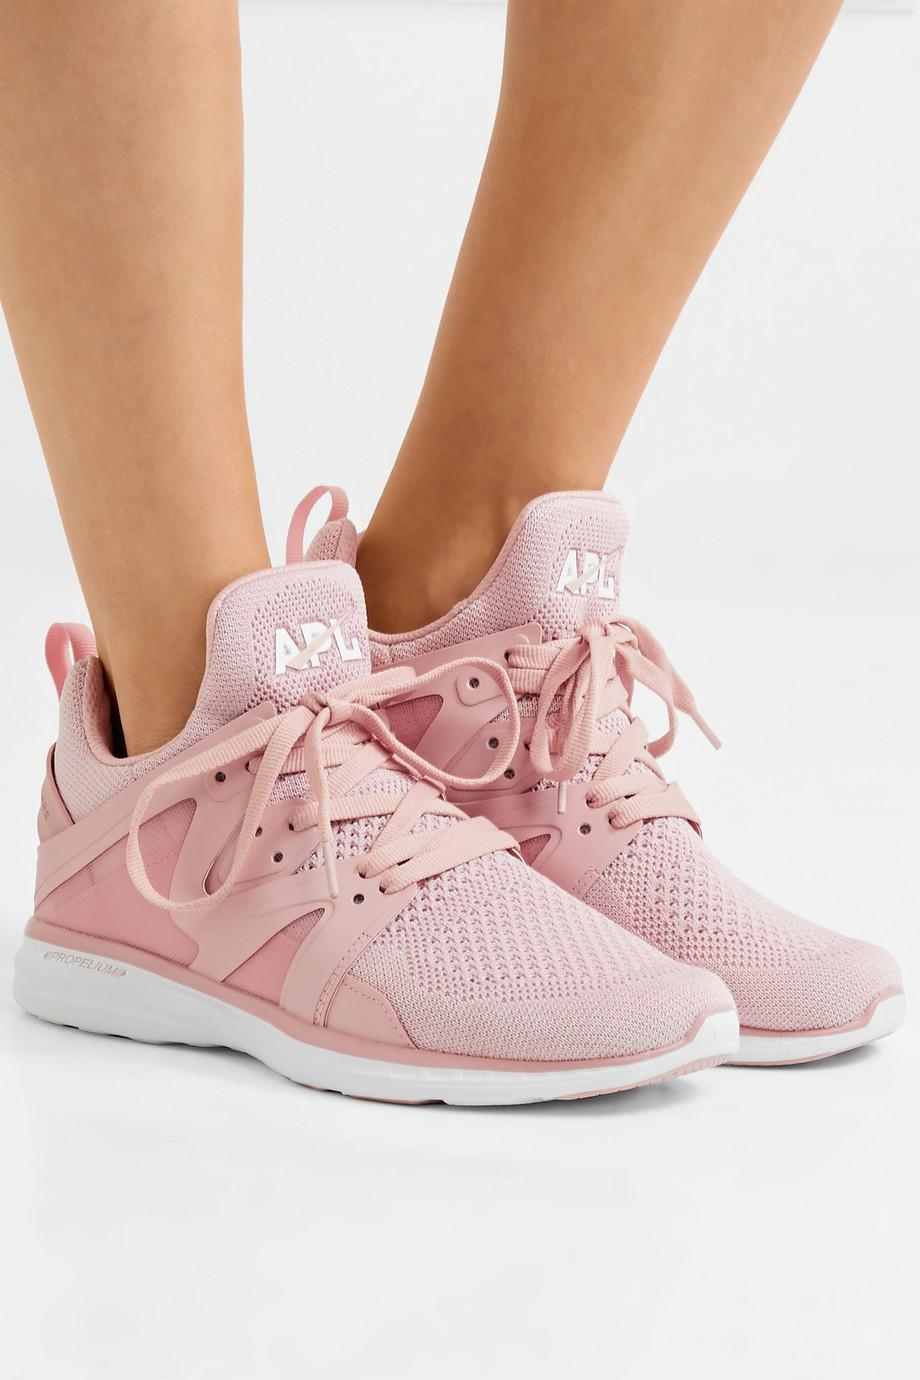 Athletic-Propulsion-Labs-APL-Ascend +80 Most Inspiring Workout Shoes Ideas for Women